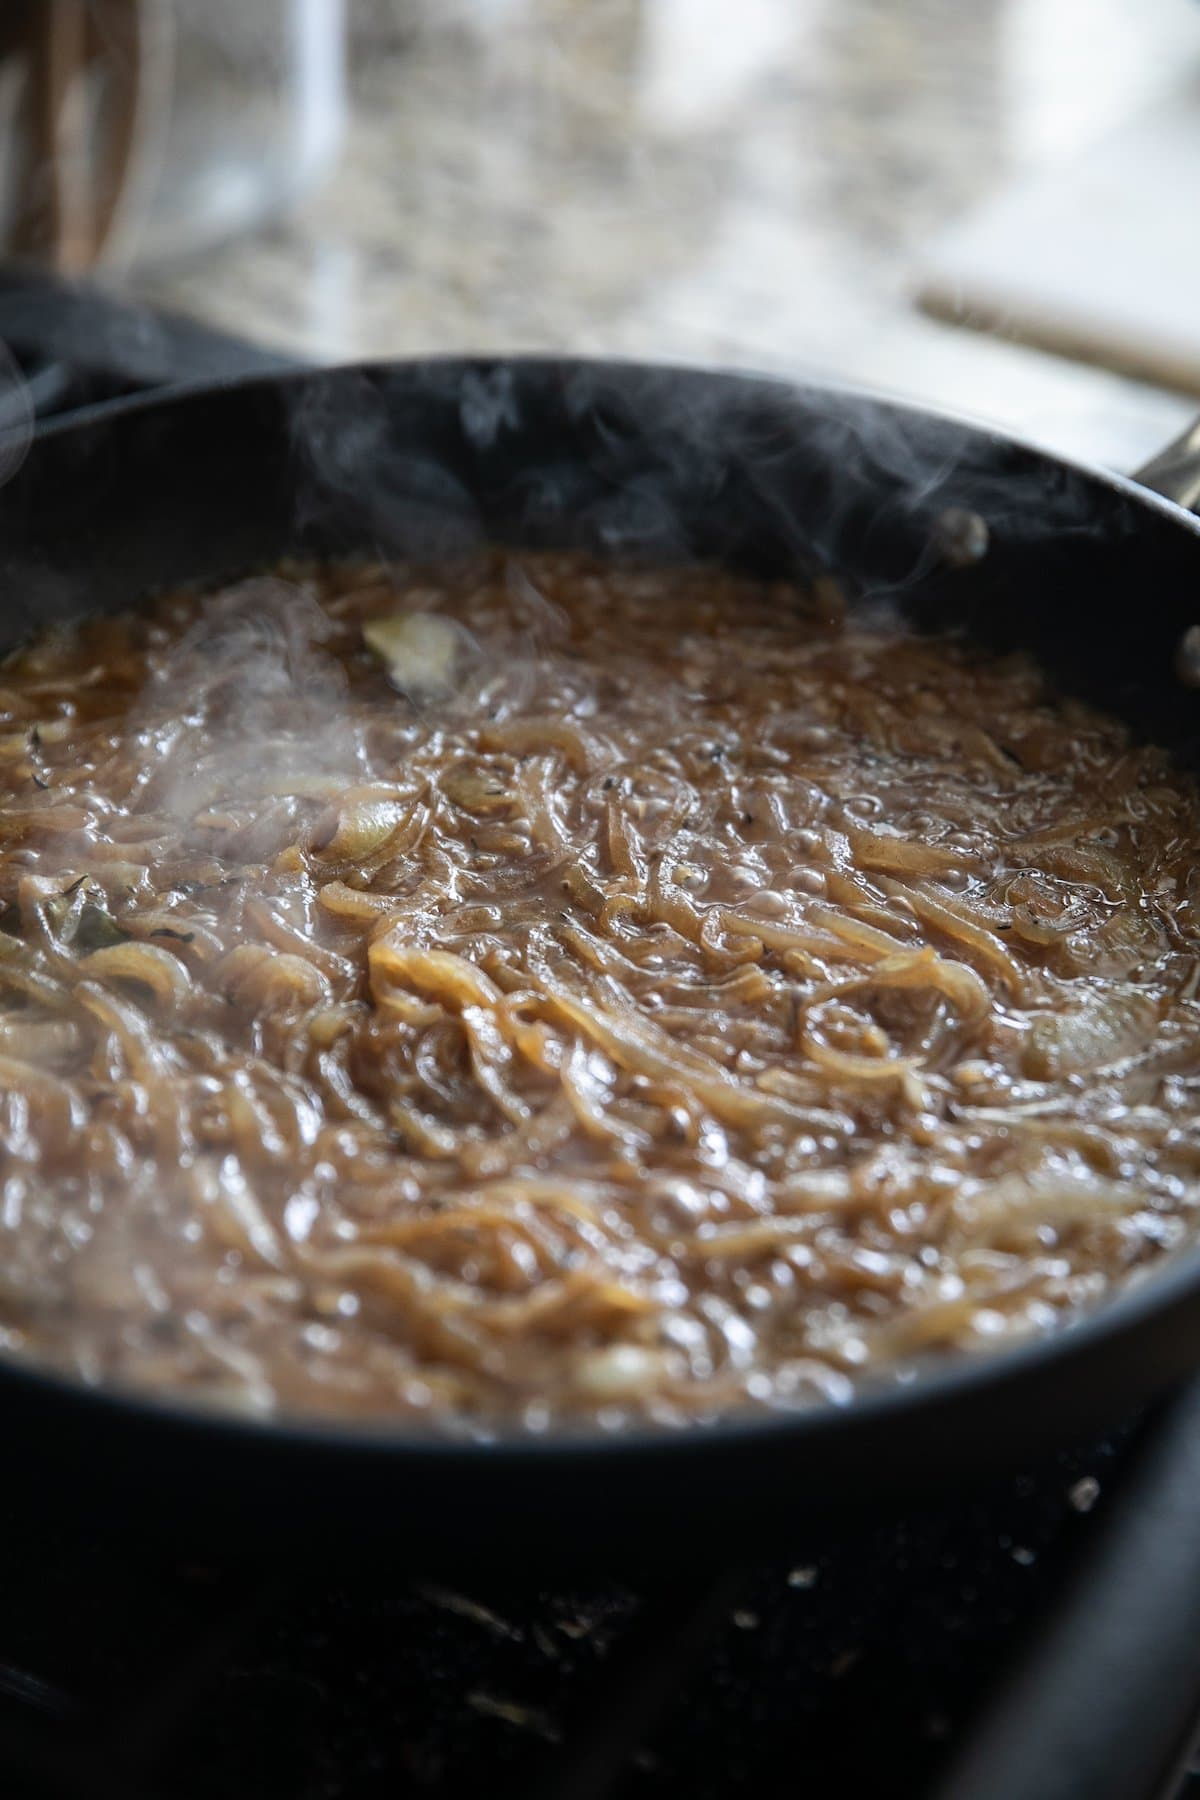 caramelized onions in a sauce all in a pan